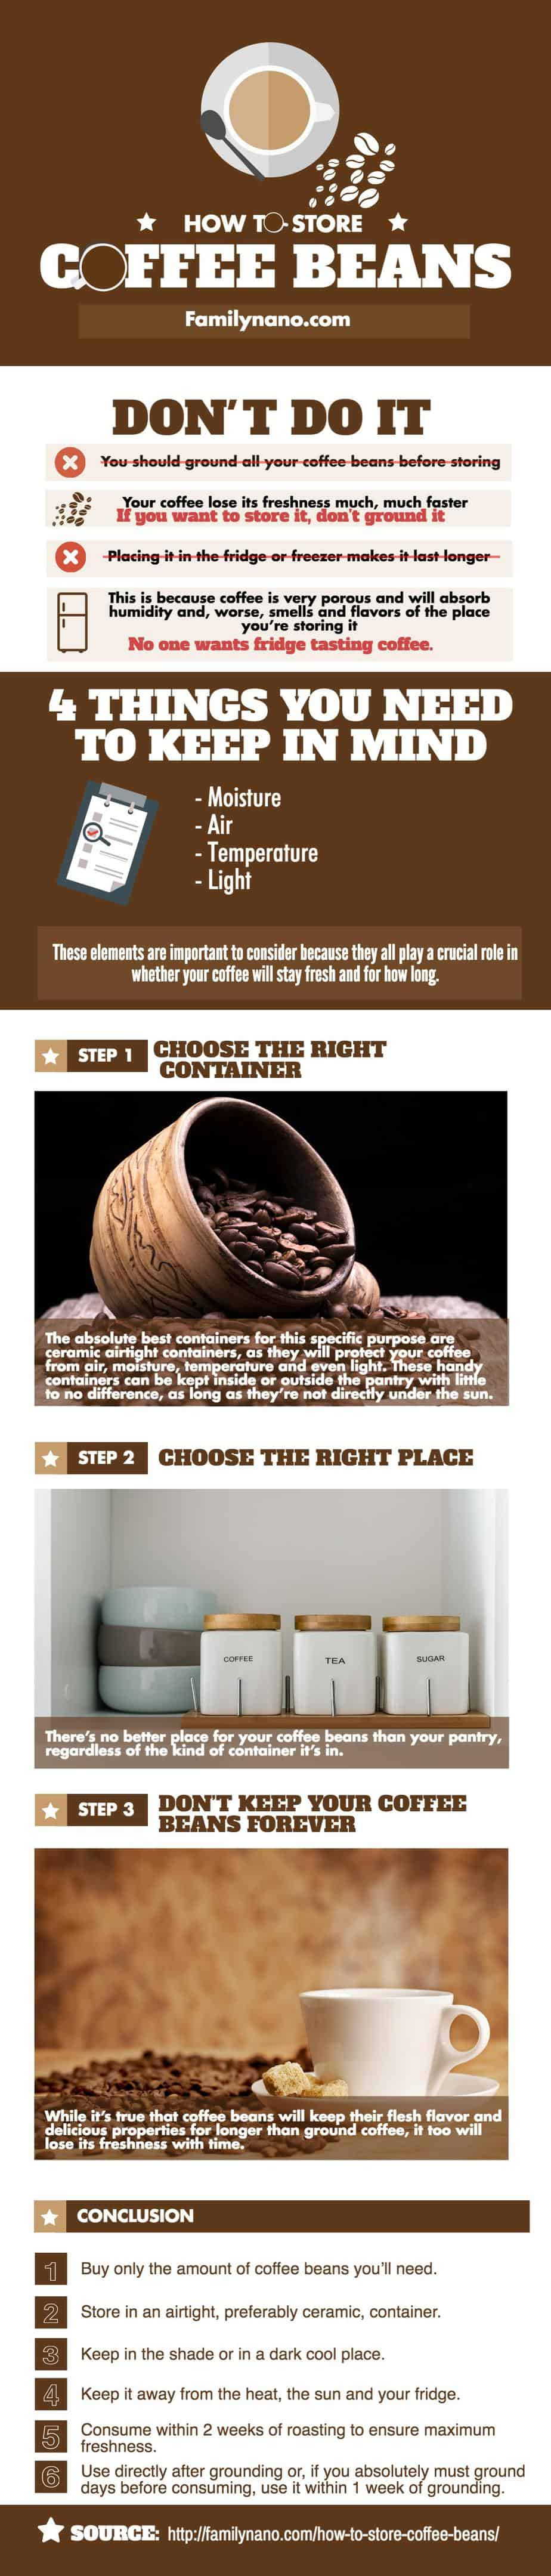 Infographic - How to store coffee beans